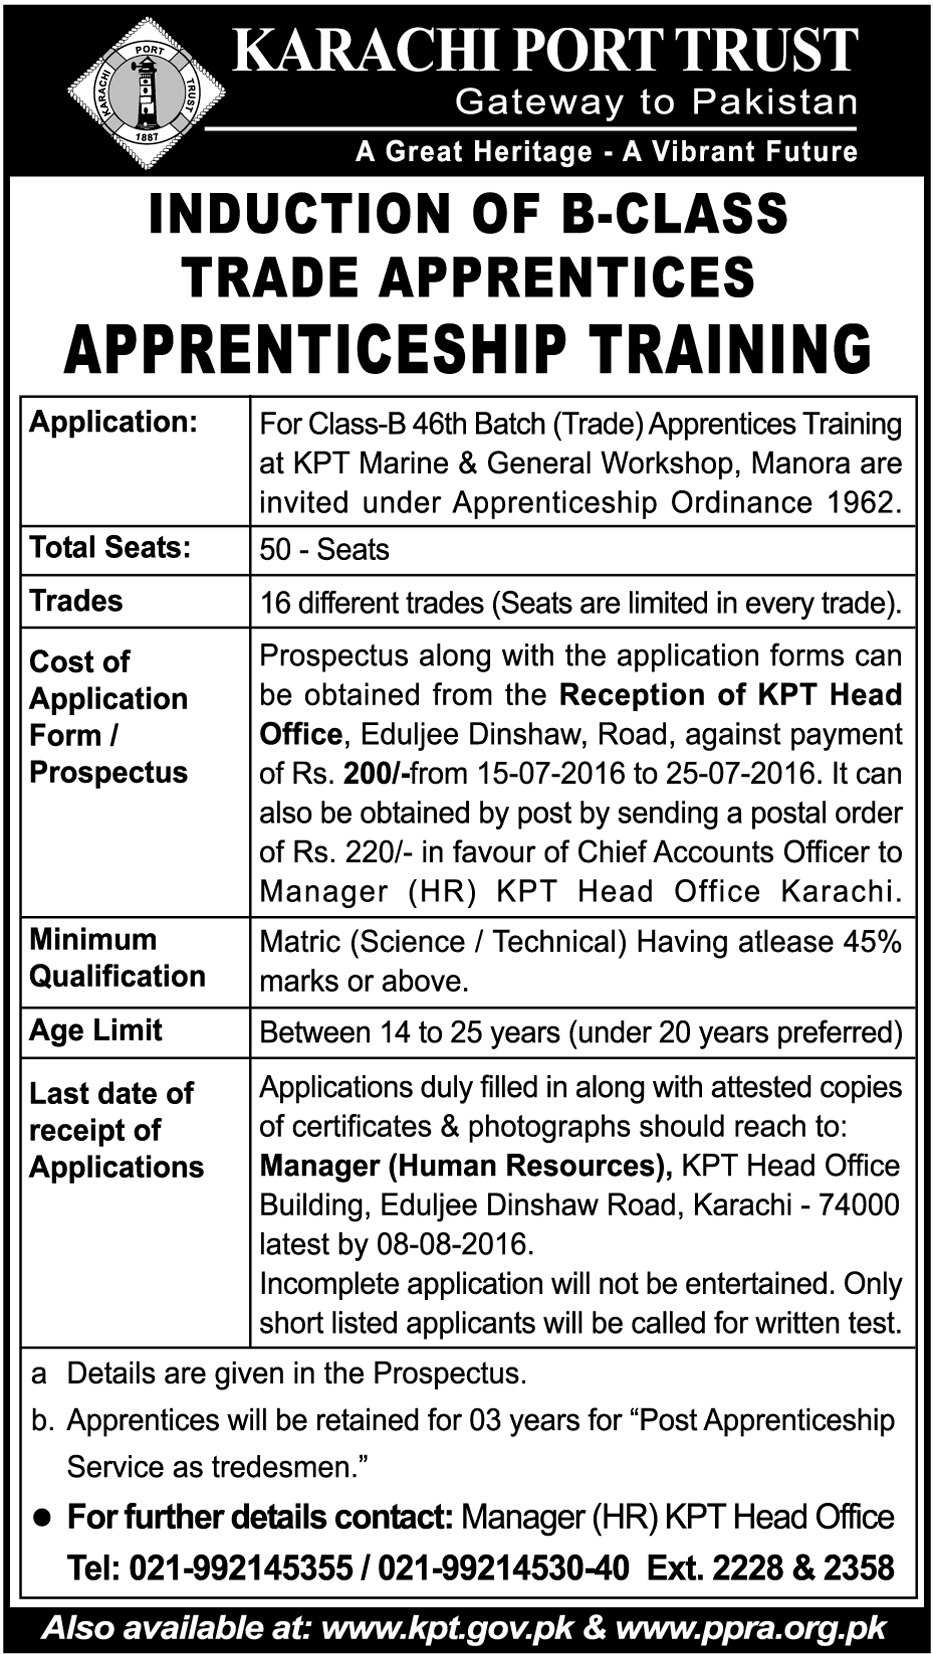 Karachi Port Trust Apprenticeship 2016 Application Form, Eligibility on application error, application to date my son, application template, application for employment, application for rental, application to join motorcycle club, application service provider, application in spanish, application to be my boyfriend, application approved, application database diagram, application trial, application meaning in science, application clip art, application to join a club, application insights, application to rent california, application cartoon, application for scholarship sample, application submitted,